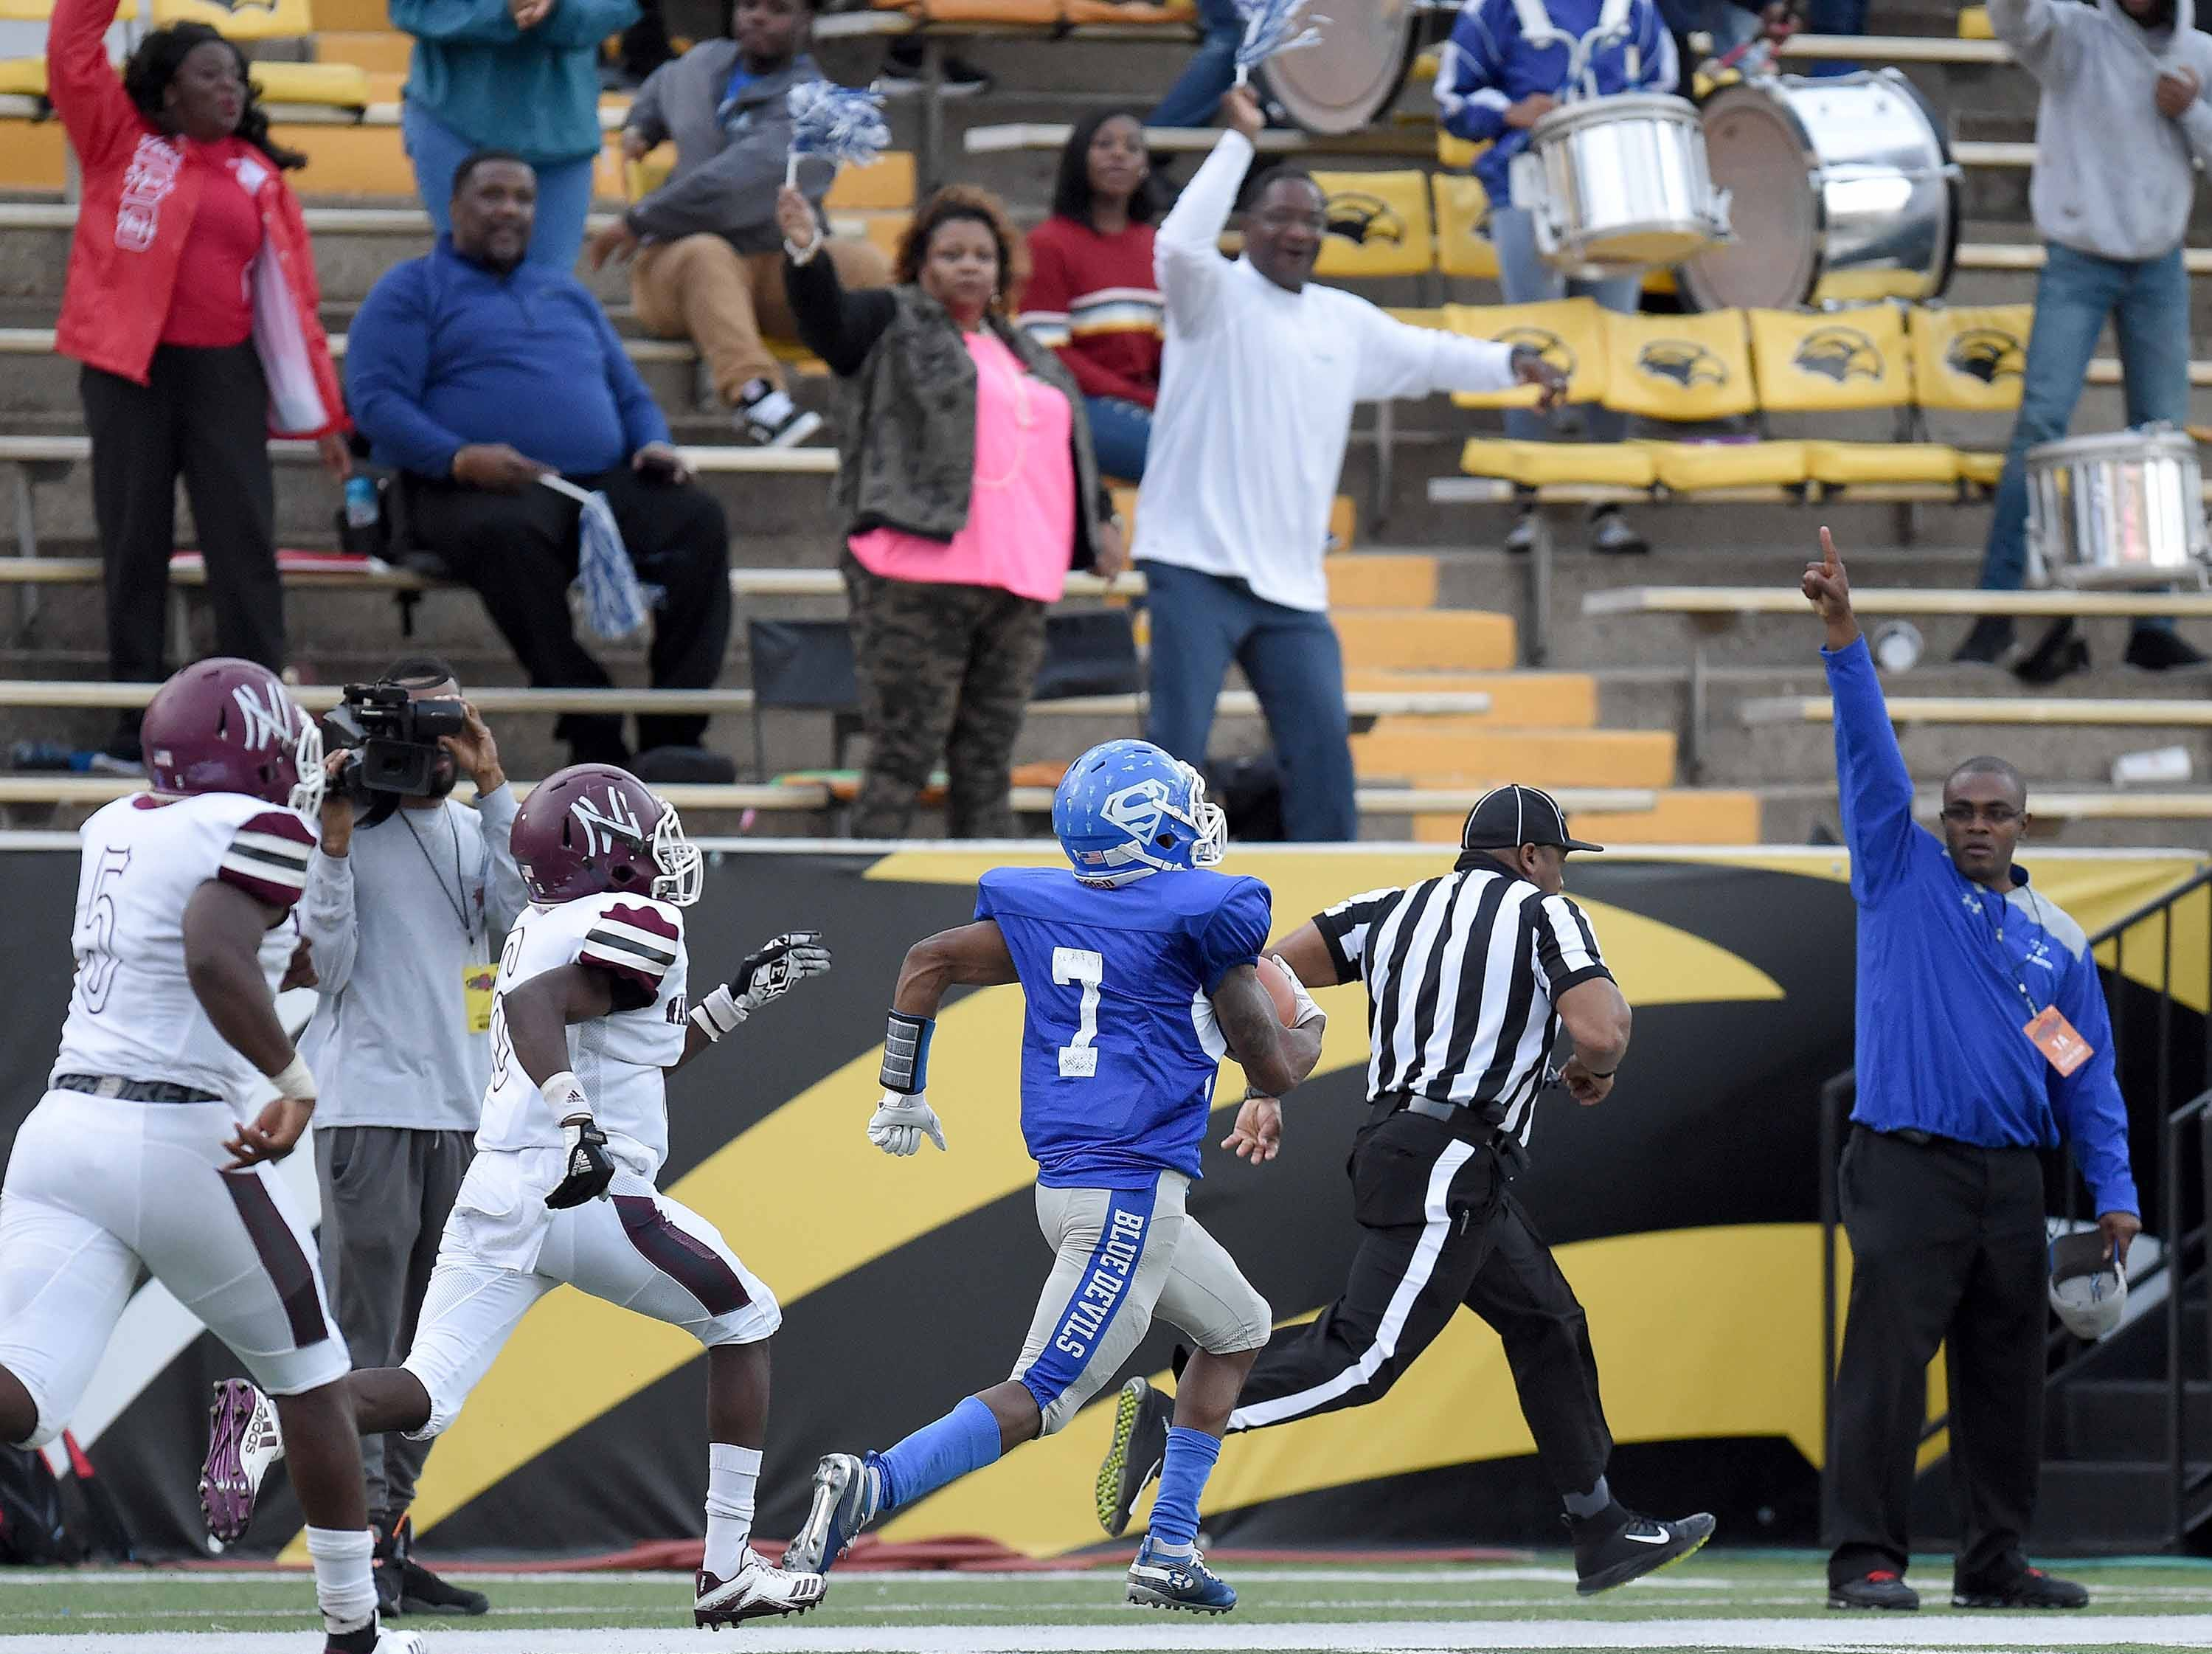 Fans celebrate in the background as Hollandale Simmons' Antavius Rounds (7) runs for a touchdown against Nanih Waiya on Friday, November 20, 2018, in the MHSAA BlueCross BlueShield Gridiron Classic High School Football Championships in M.M. Roberts Stadium on the University of Southern Mississippi campus in Hattiesburg, Miss.